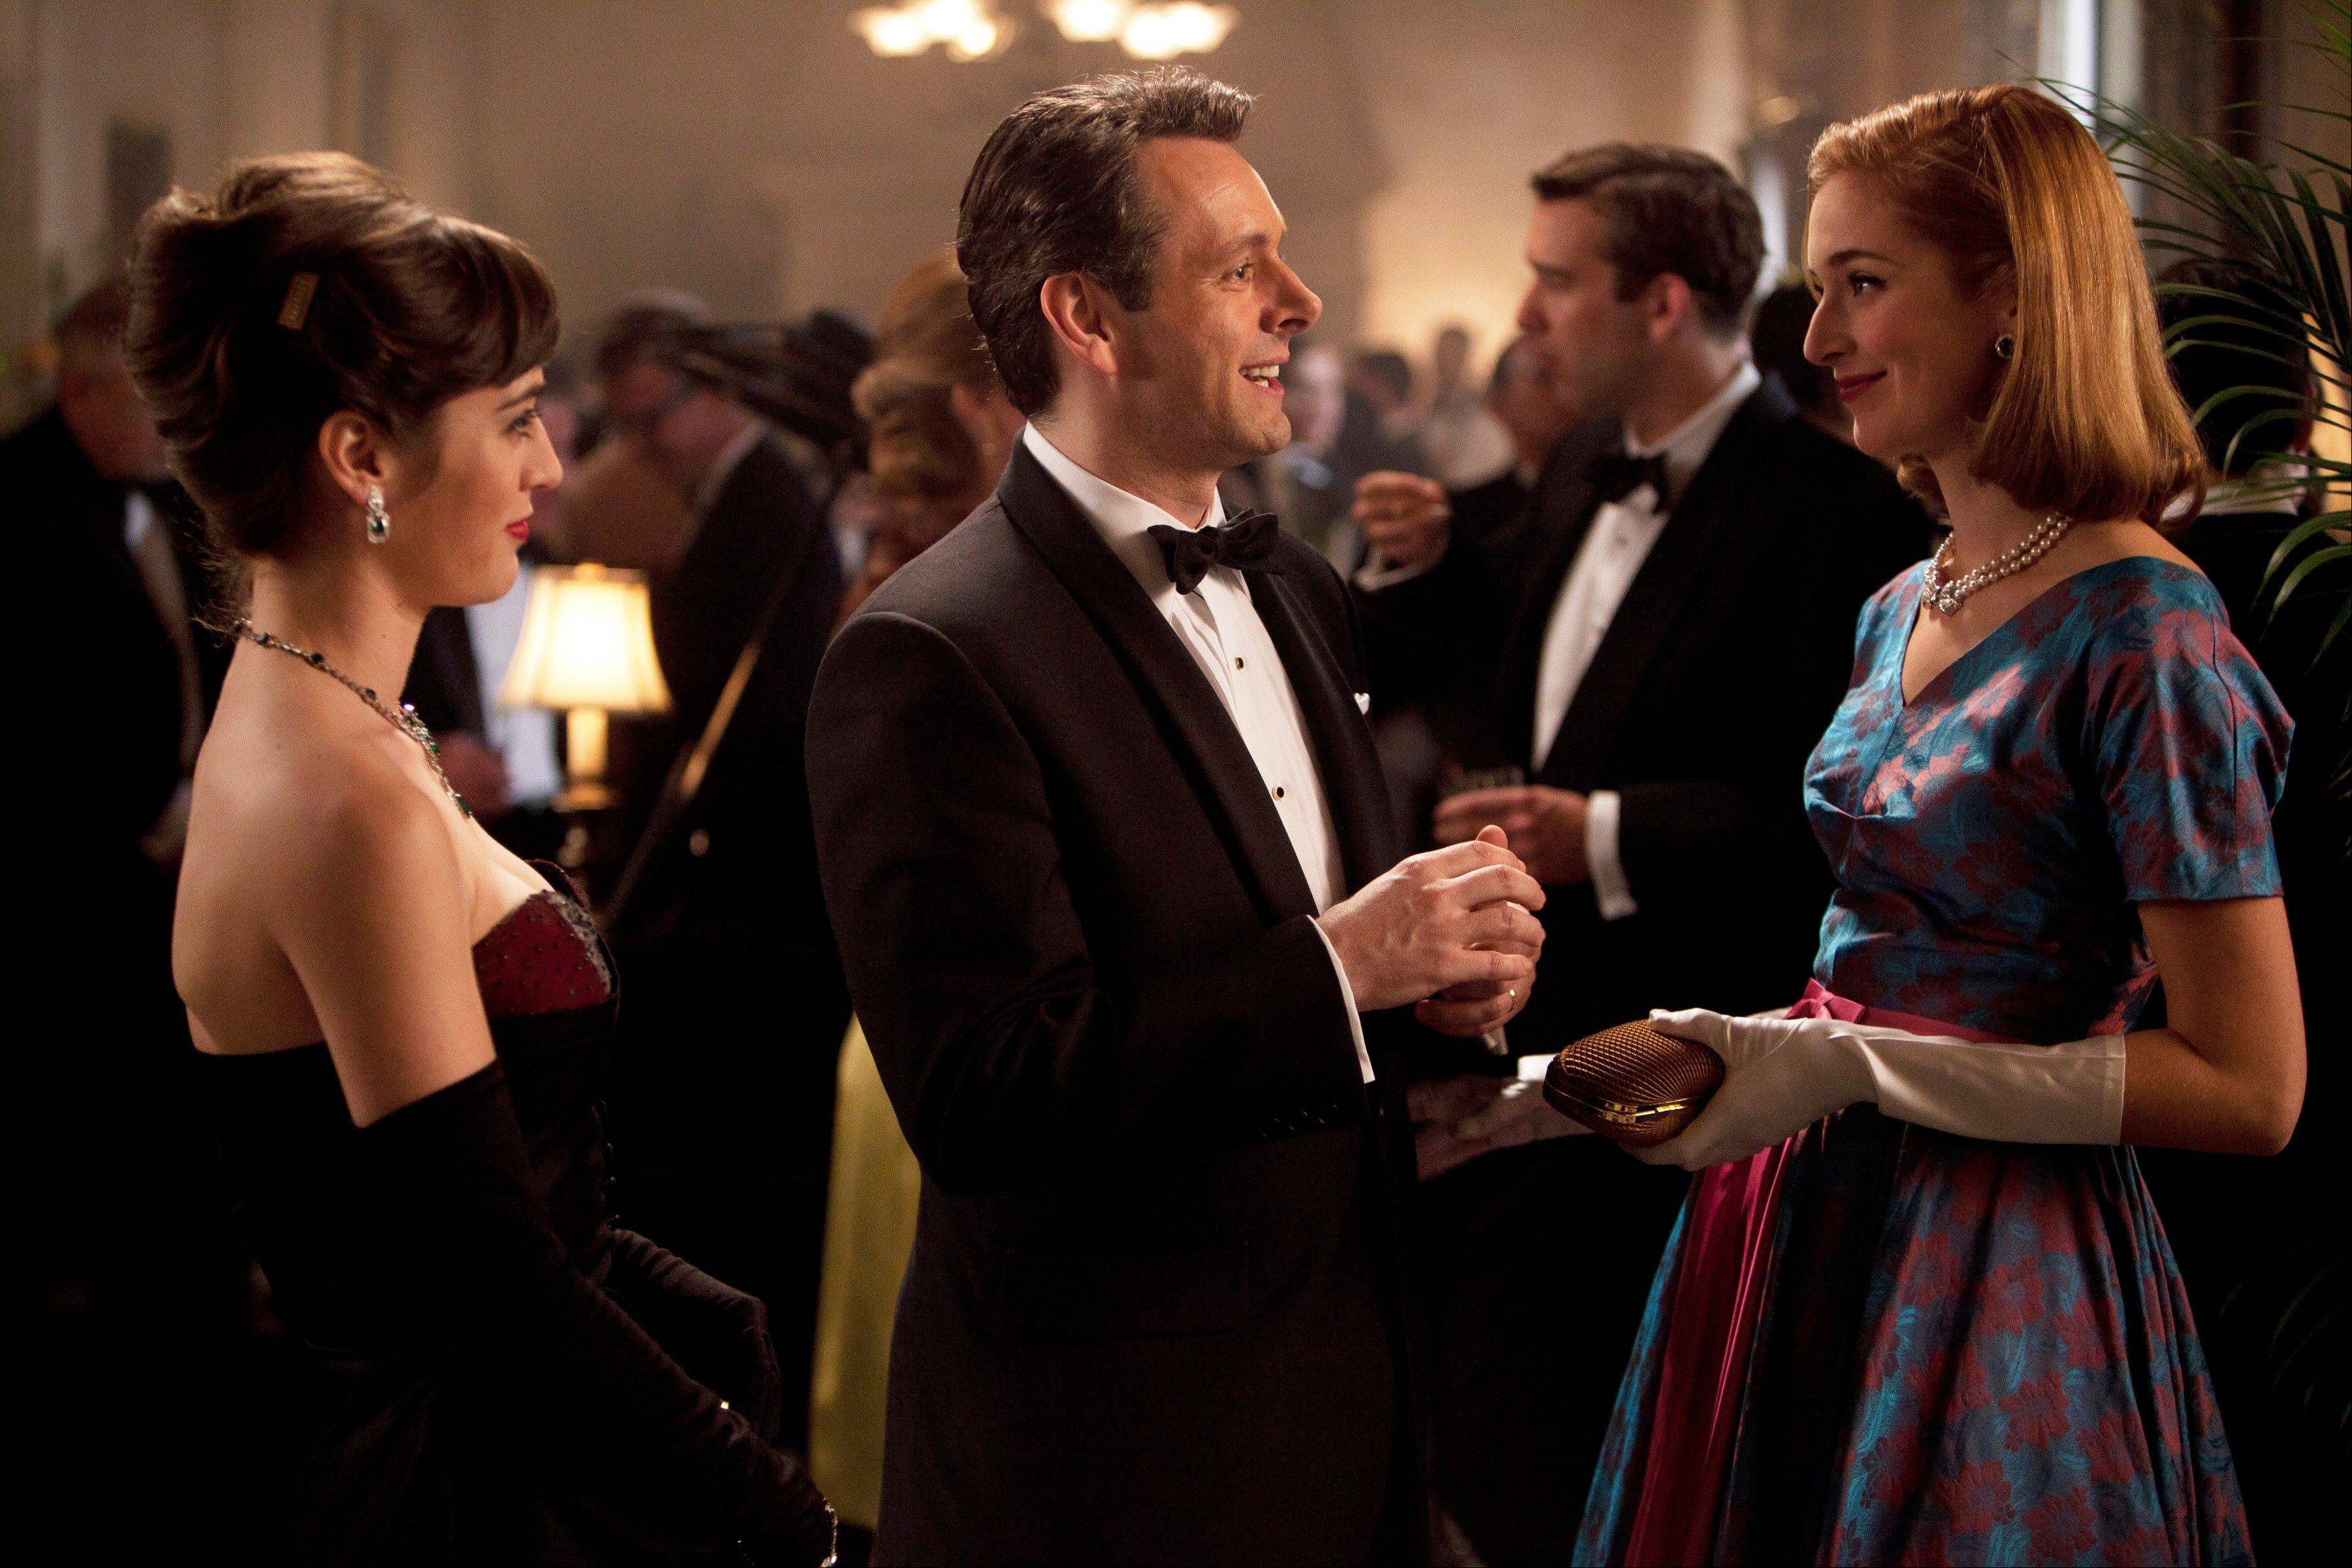 Lizzy Caplan, left, plays Virginia Johnson, Michael Sheen is Dr. William Masters and Caitlin Fitzgerald plays Libby Masters in Showtime�s �Masters of Sex.�